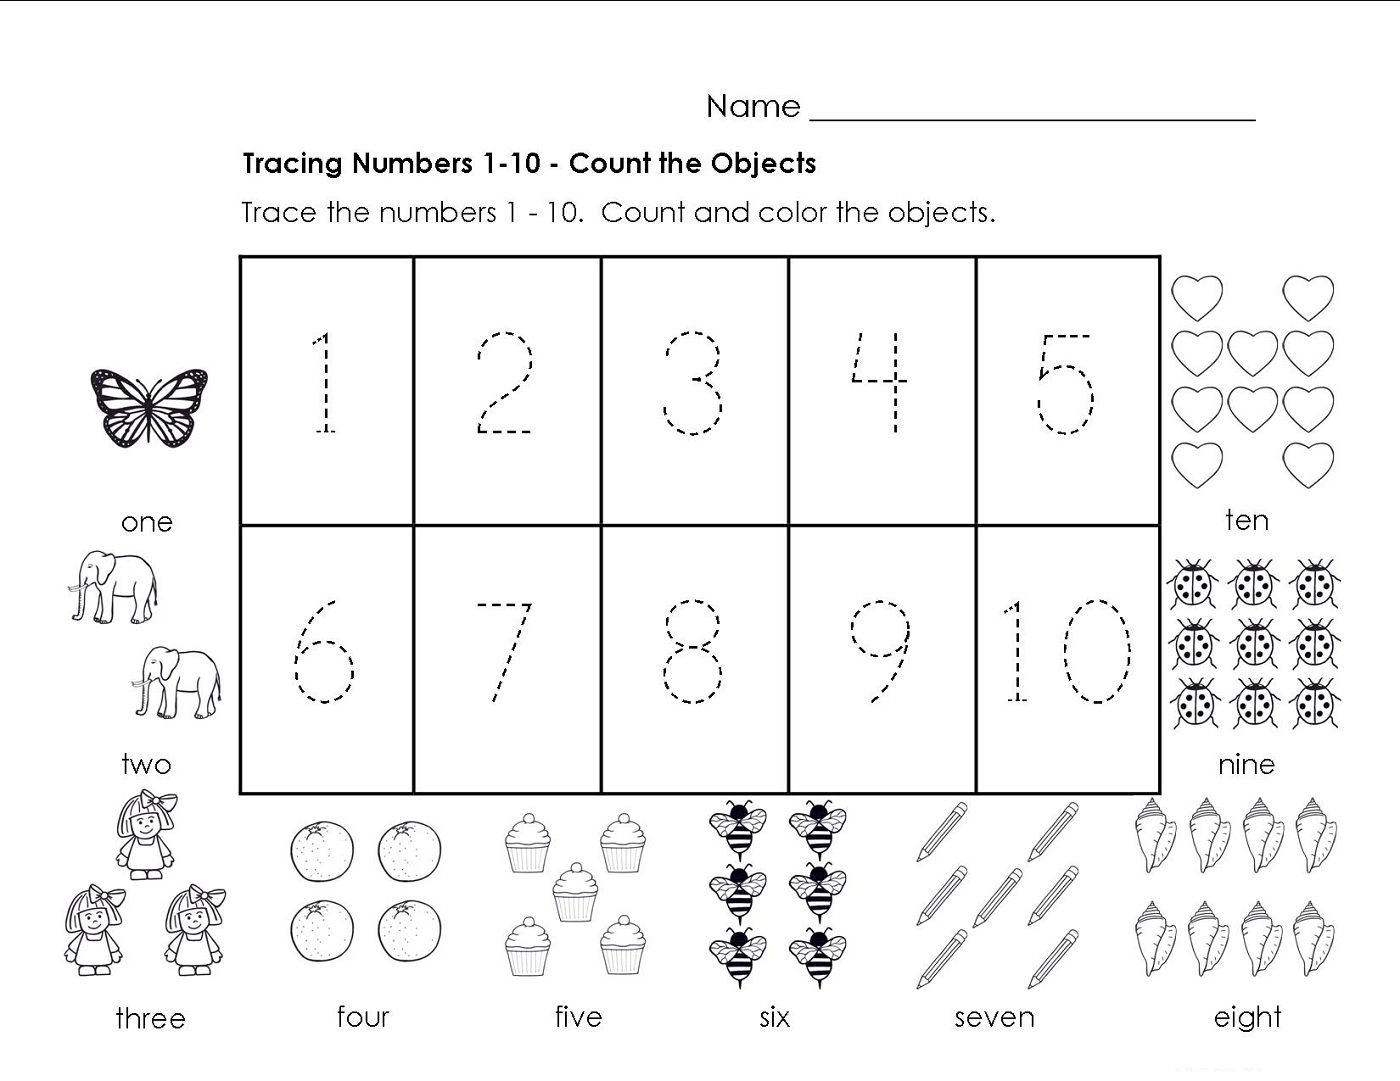 Worksheets Counting Worksheets 1-10 traceable numbers 1 10 worksheets to print activity shelter shelter